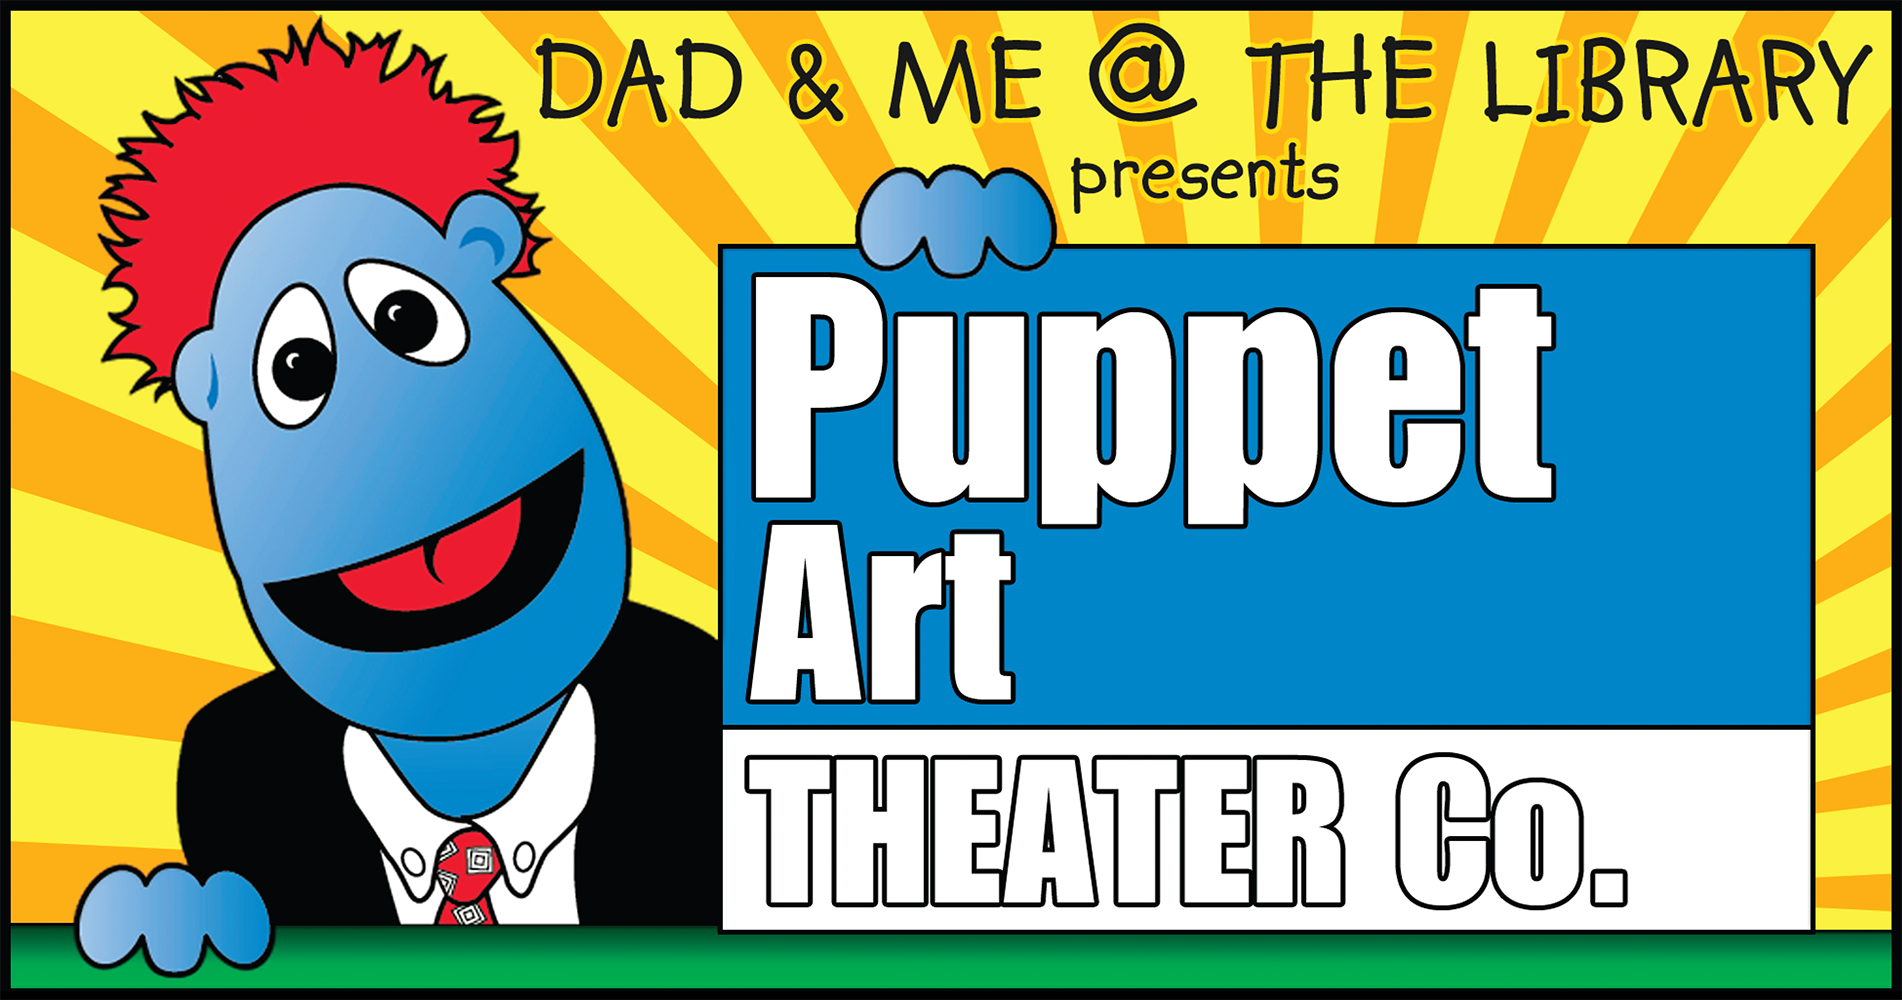 Dad & Me @ the Library presents Puppet Art Theater Co.